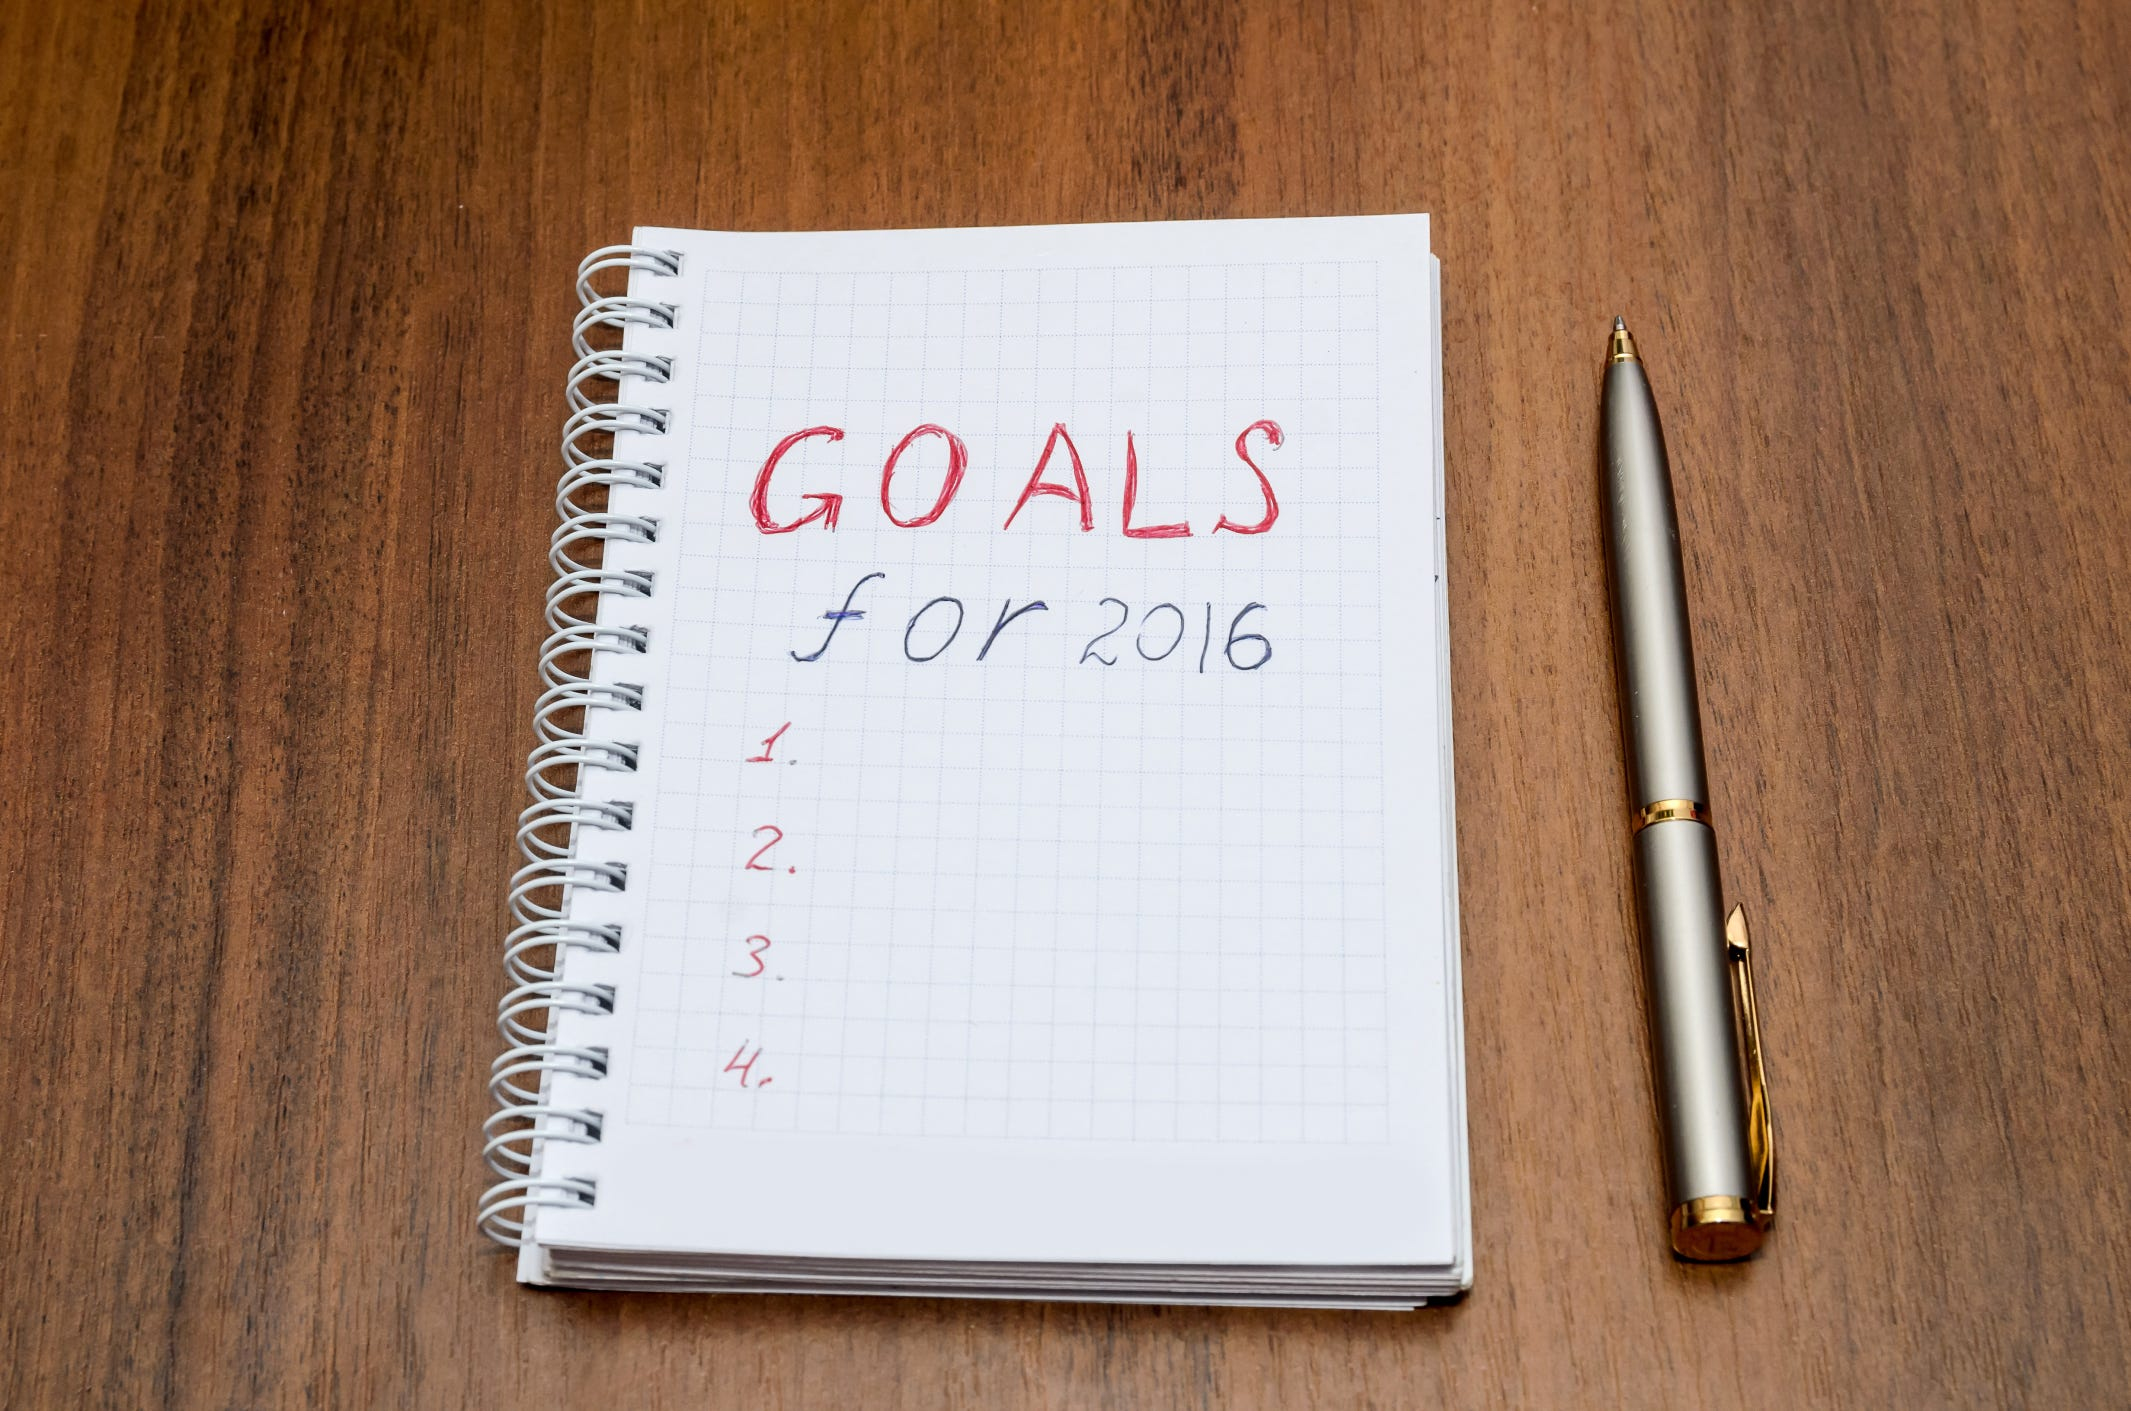 The 3 easiest financial resolutions you can make for 2016